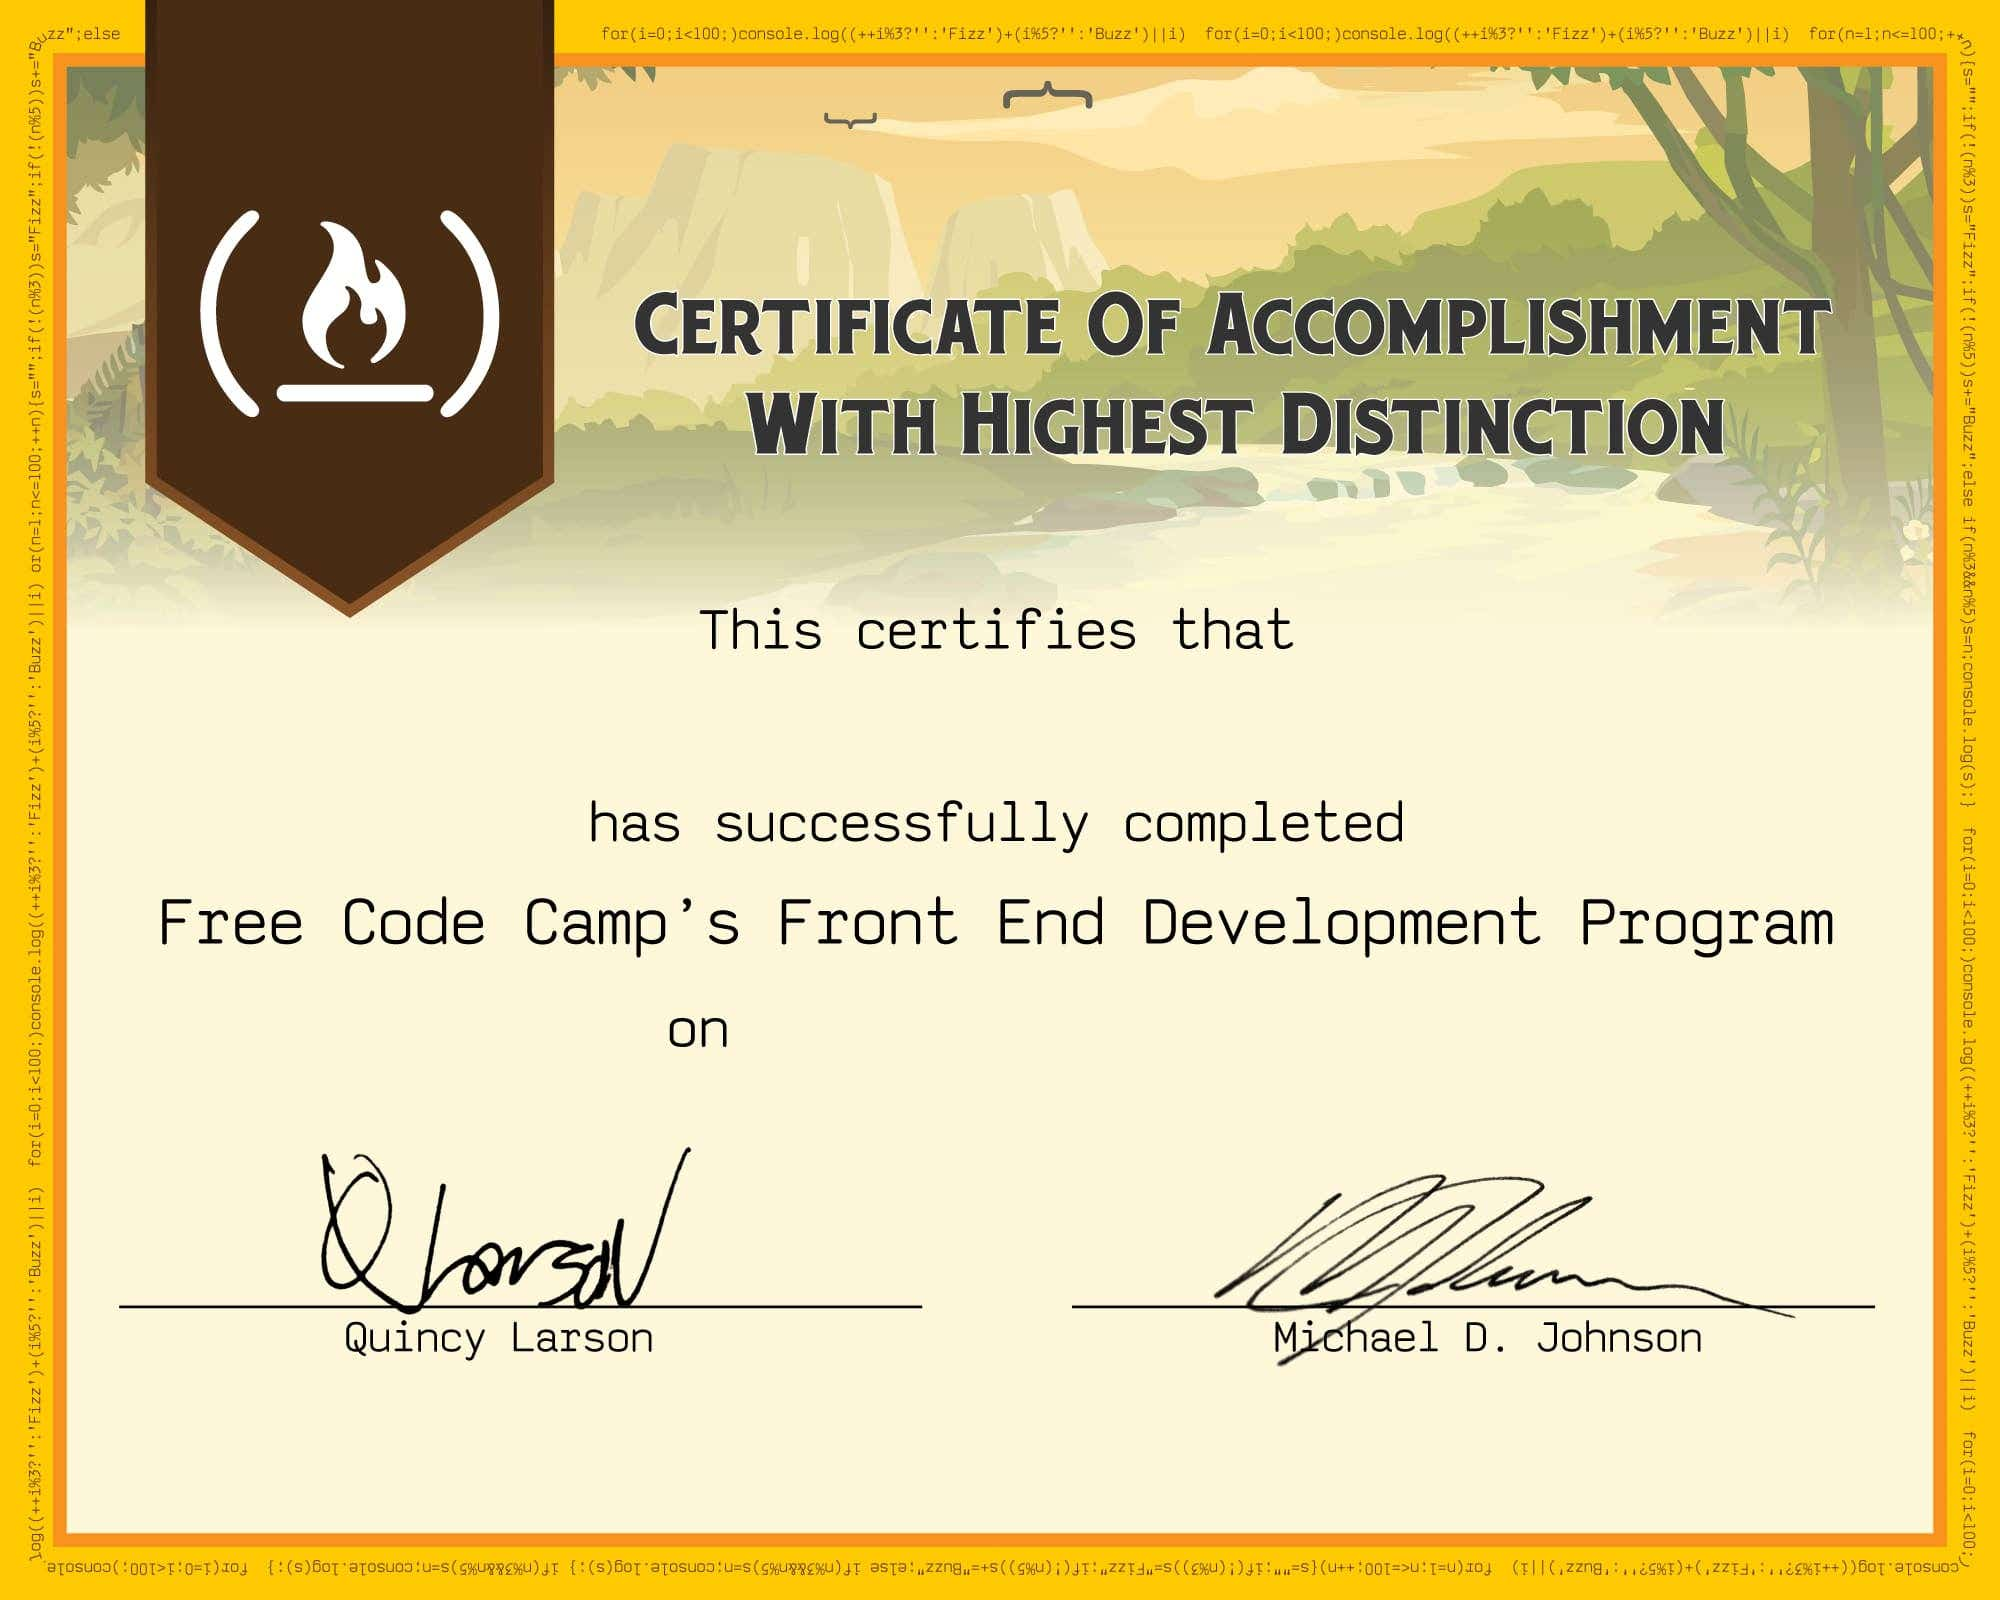 Free Code Camp's Front End Development